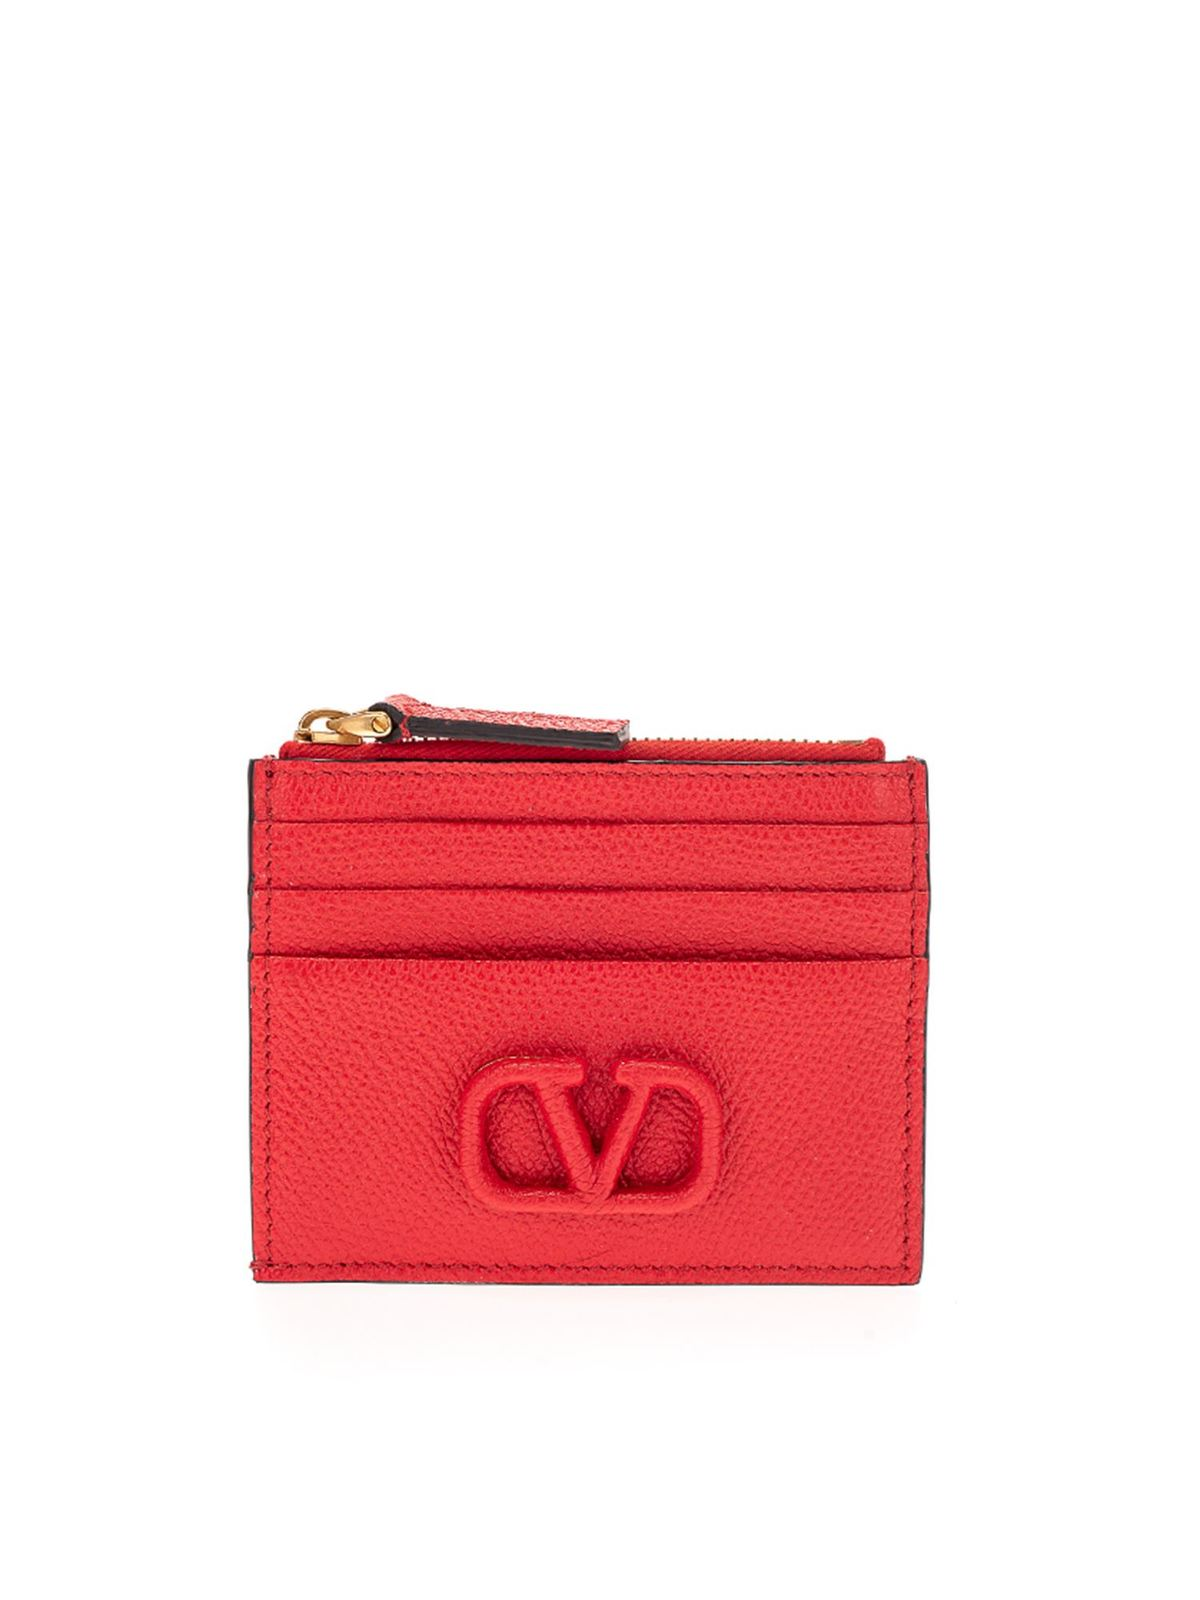 Valentino LOGO WALLET IN PURE RED COLOR